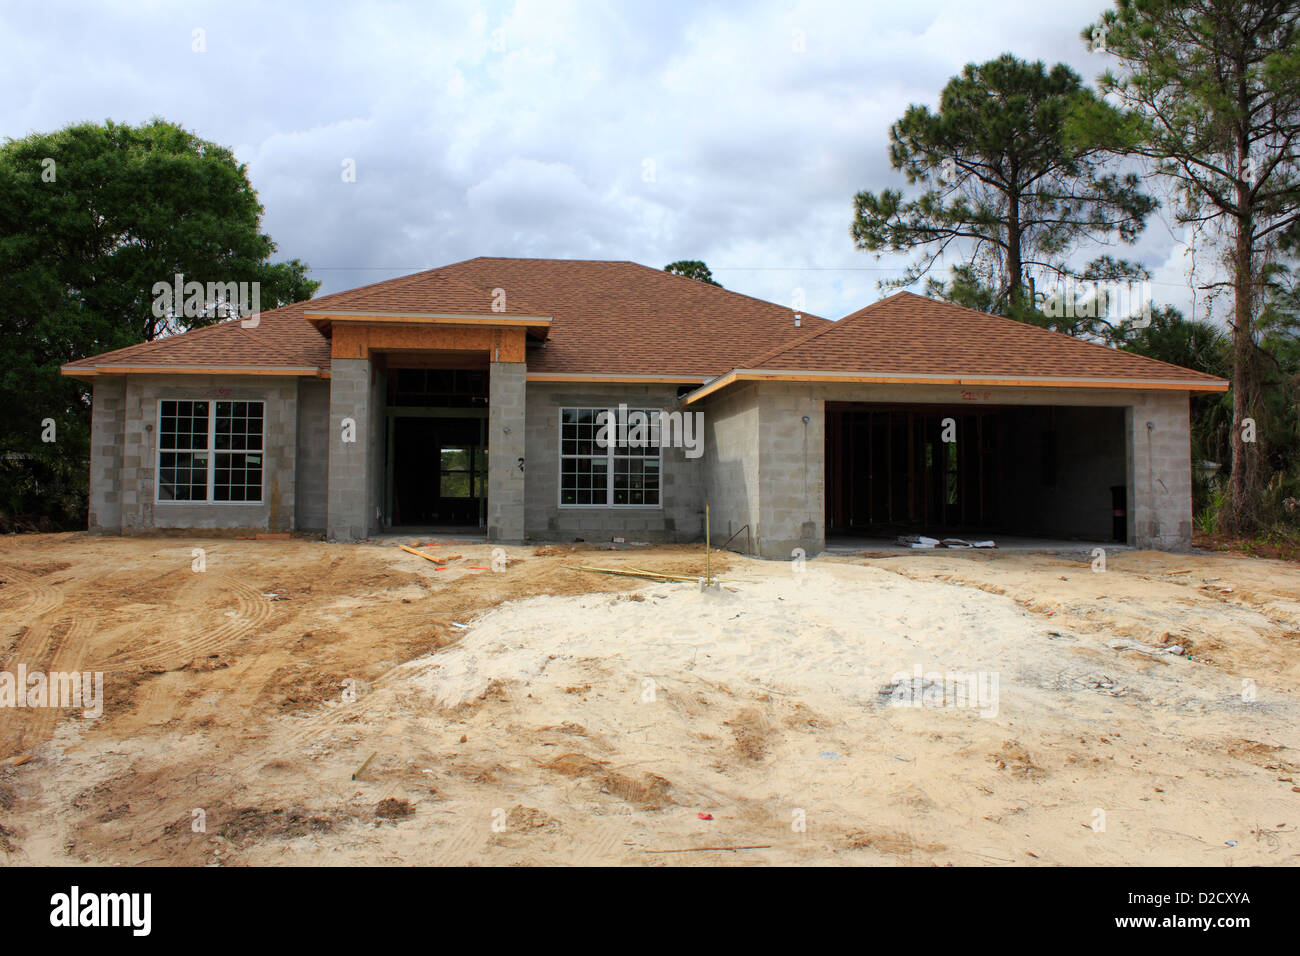 A Typical 3 Bedroom 2 Bath Cement Block Construction Home House Being Built  In Florida, USA